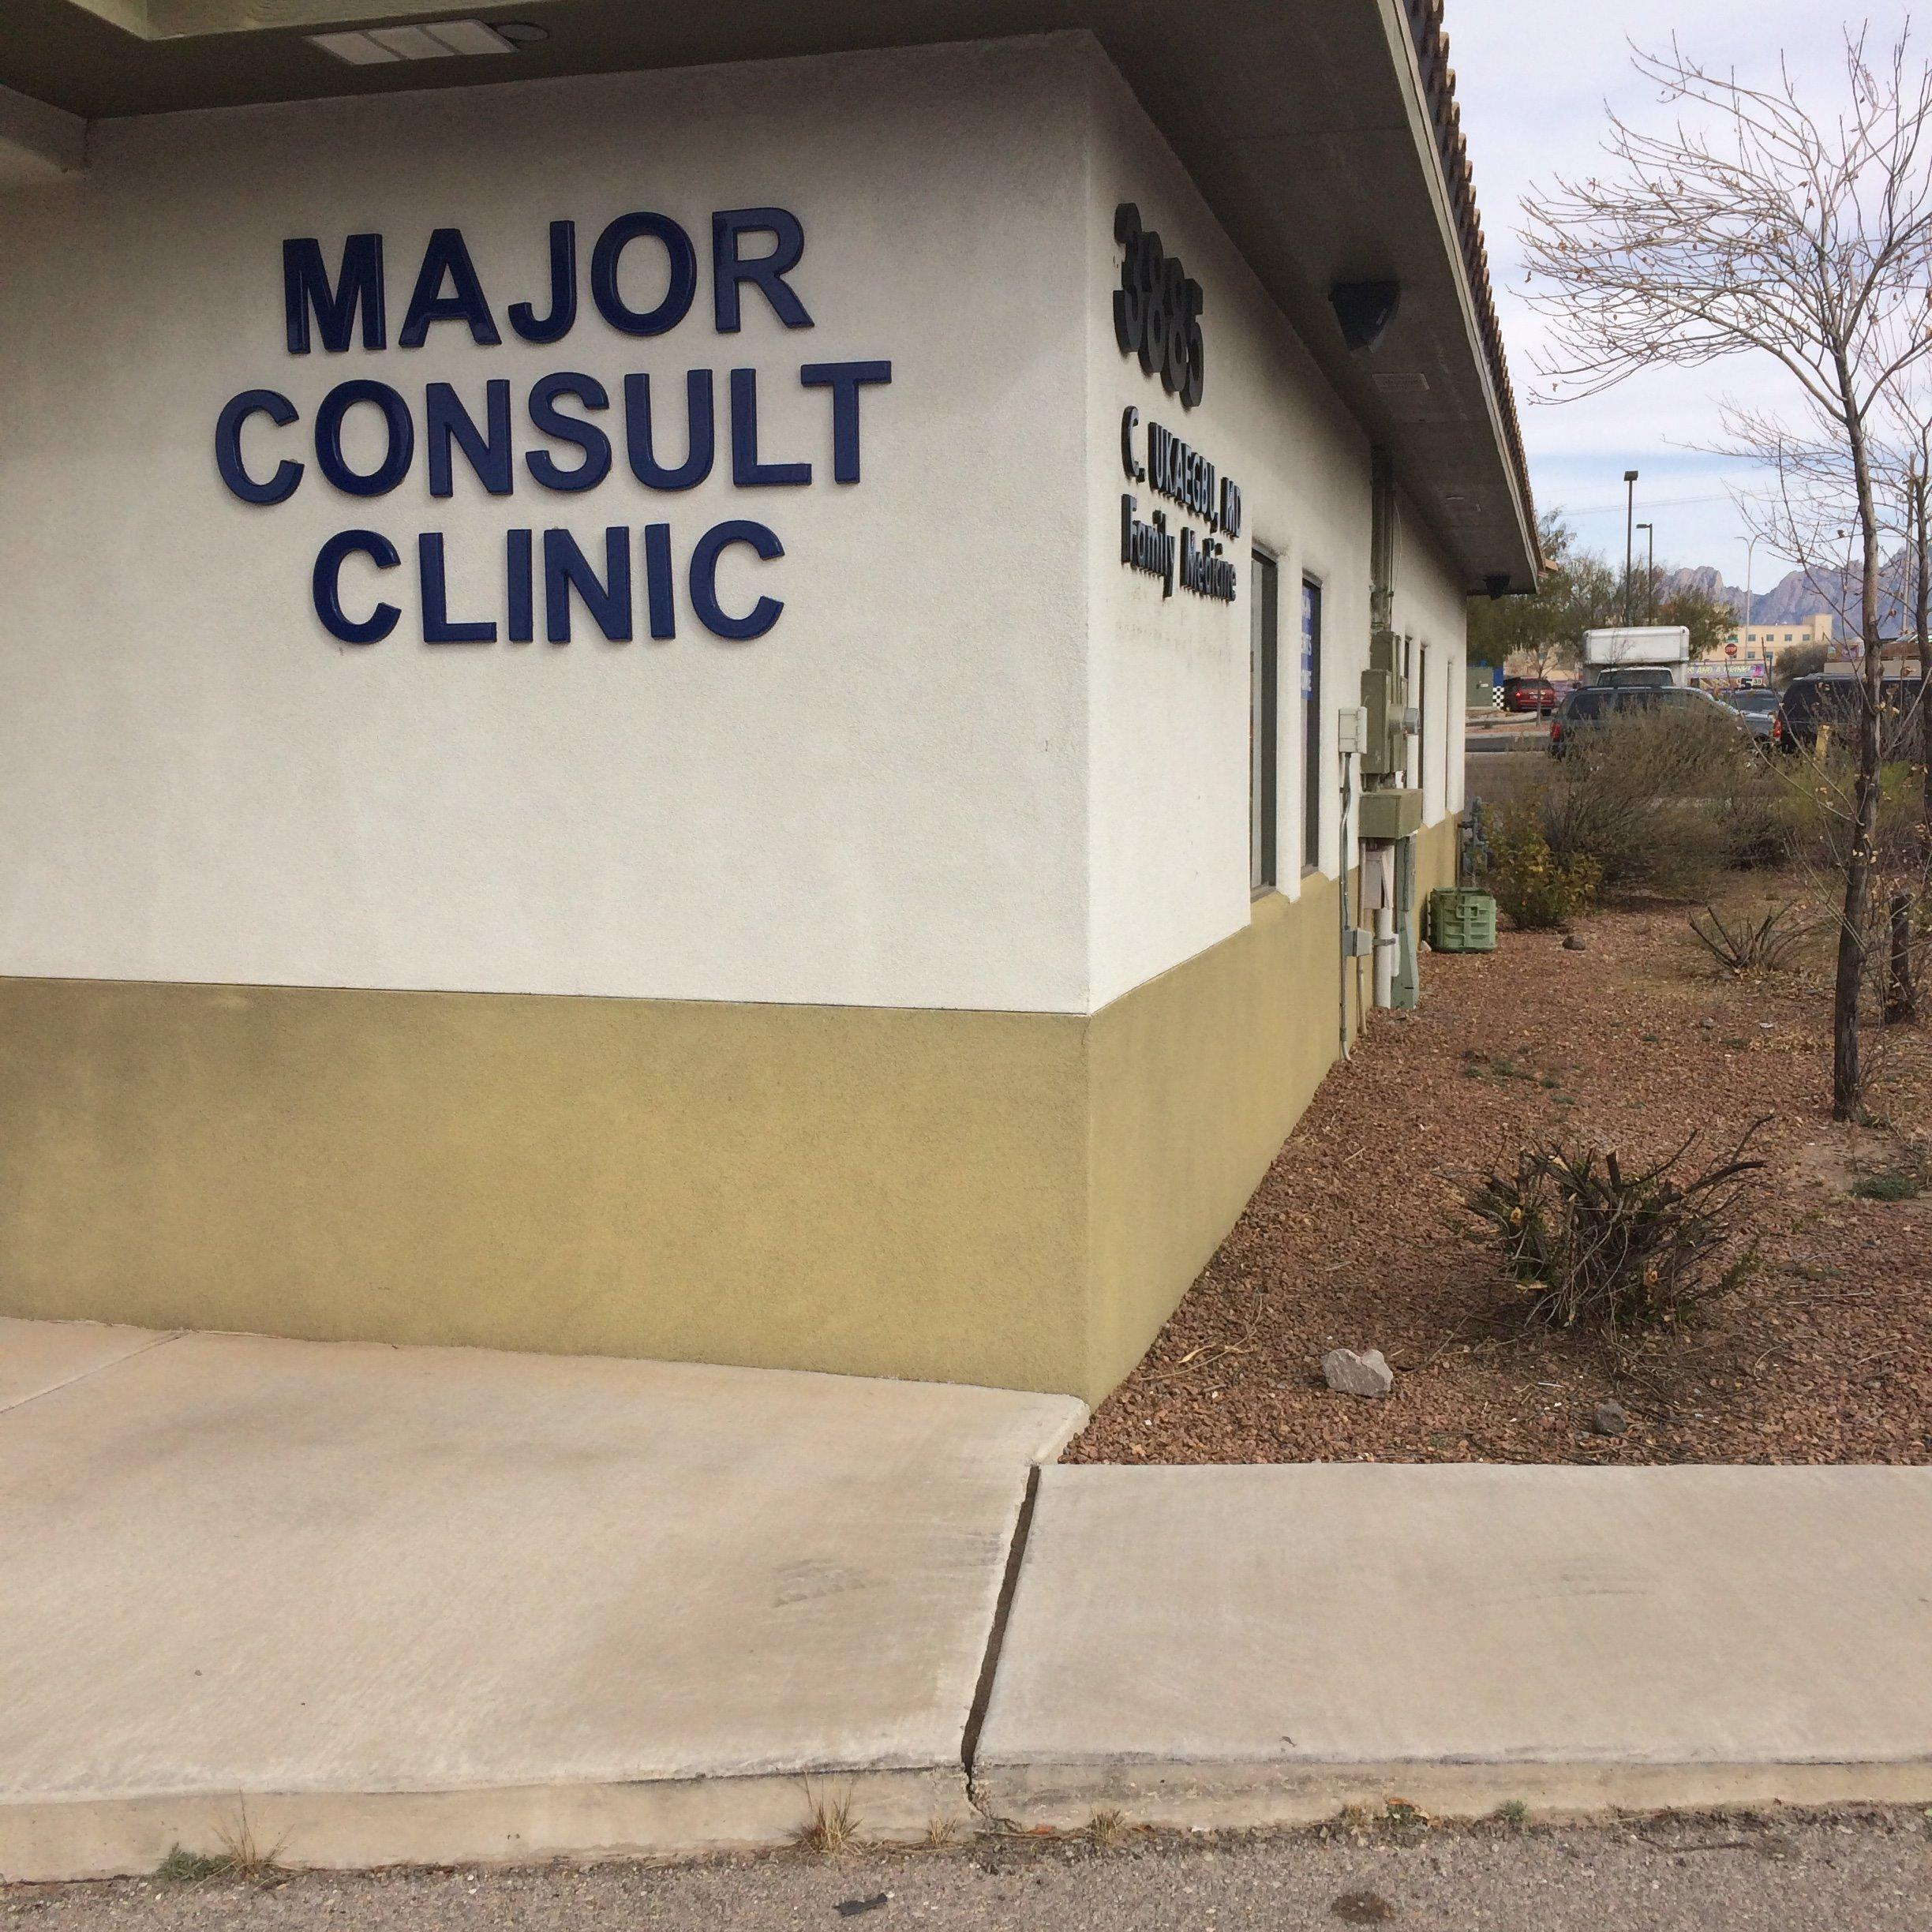 Major consult clinic coupons near me in las cruces 8coupons for Motor vehicle department las cruces nm